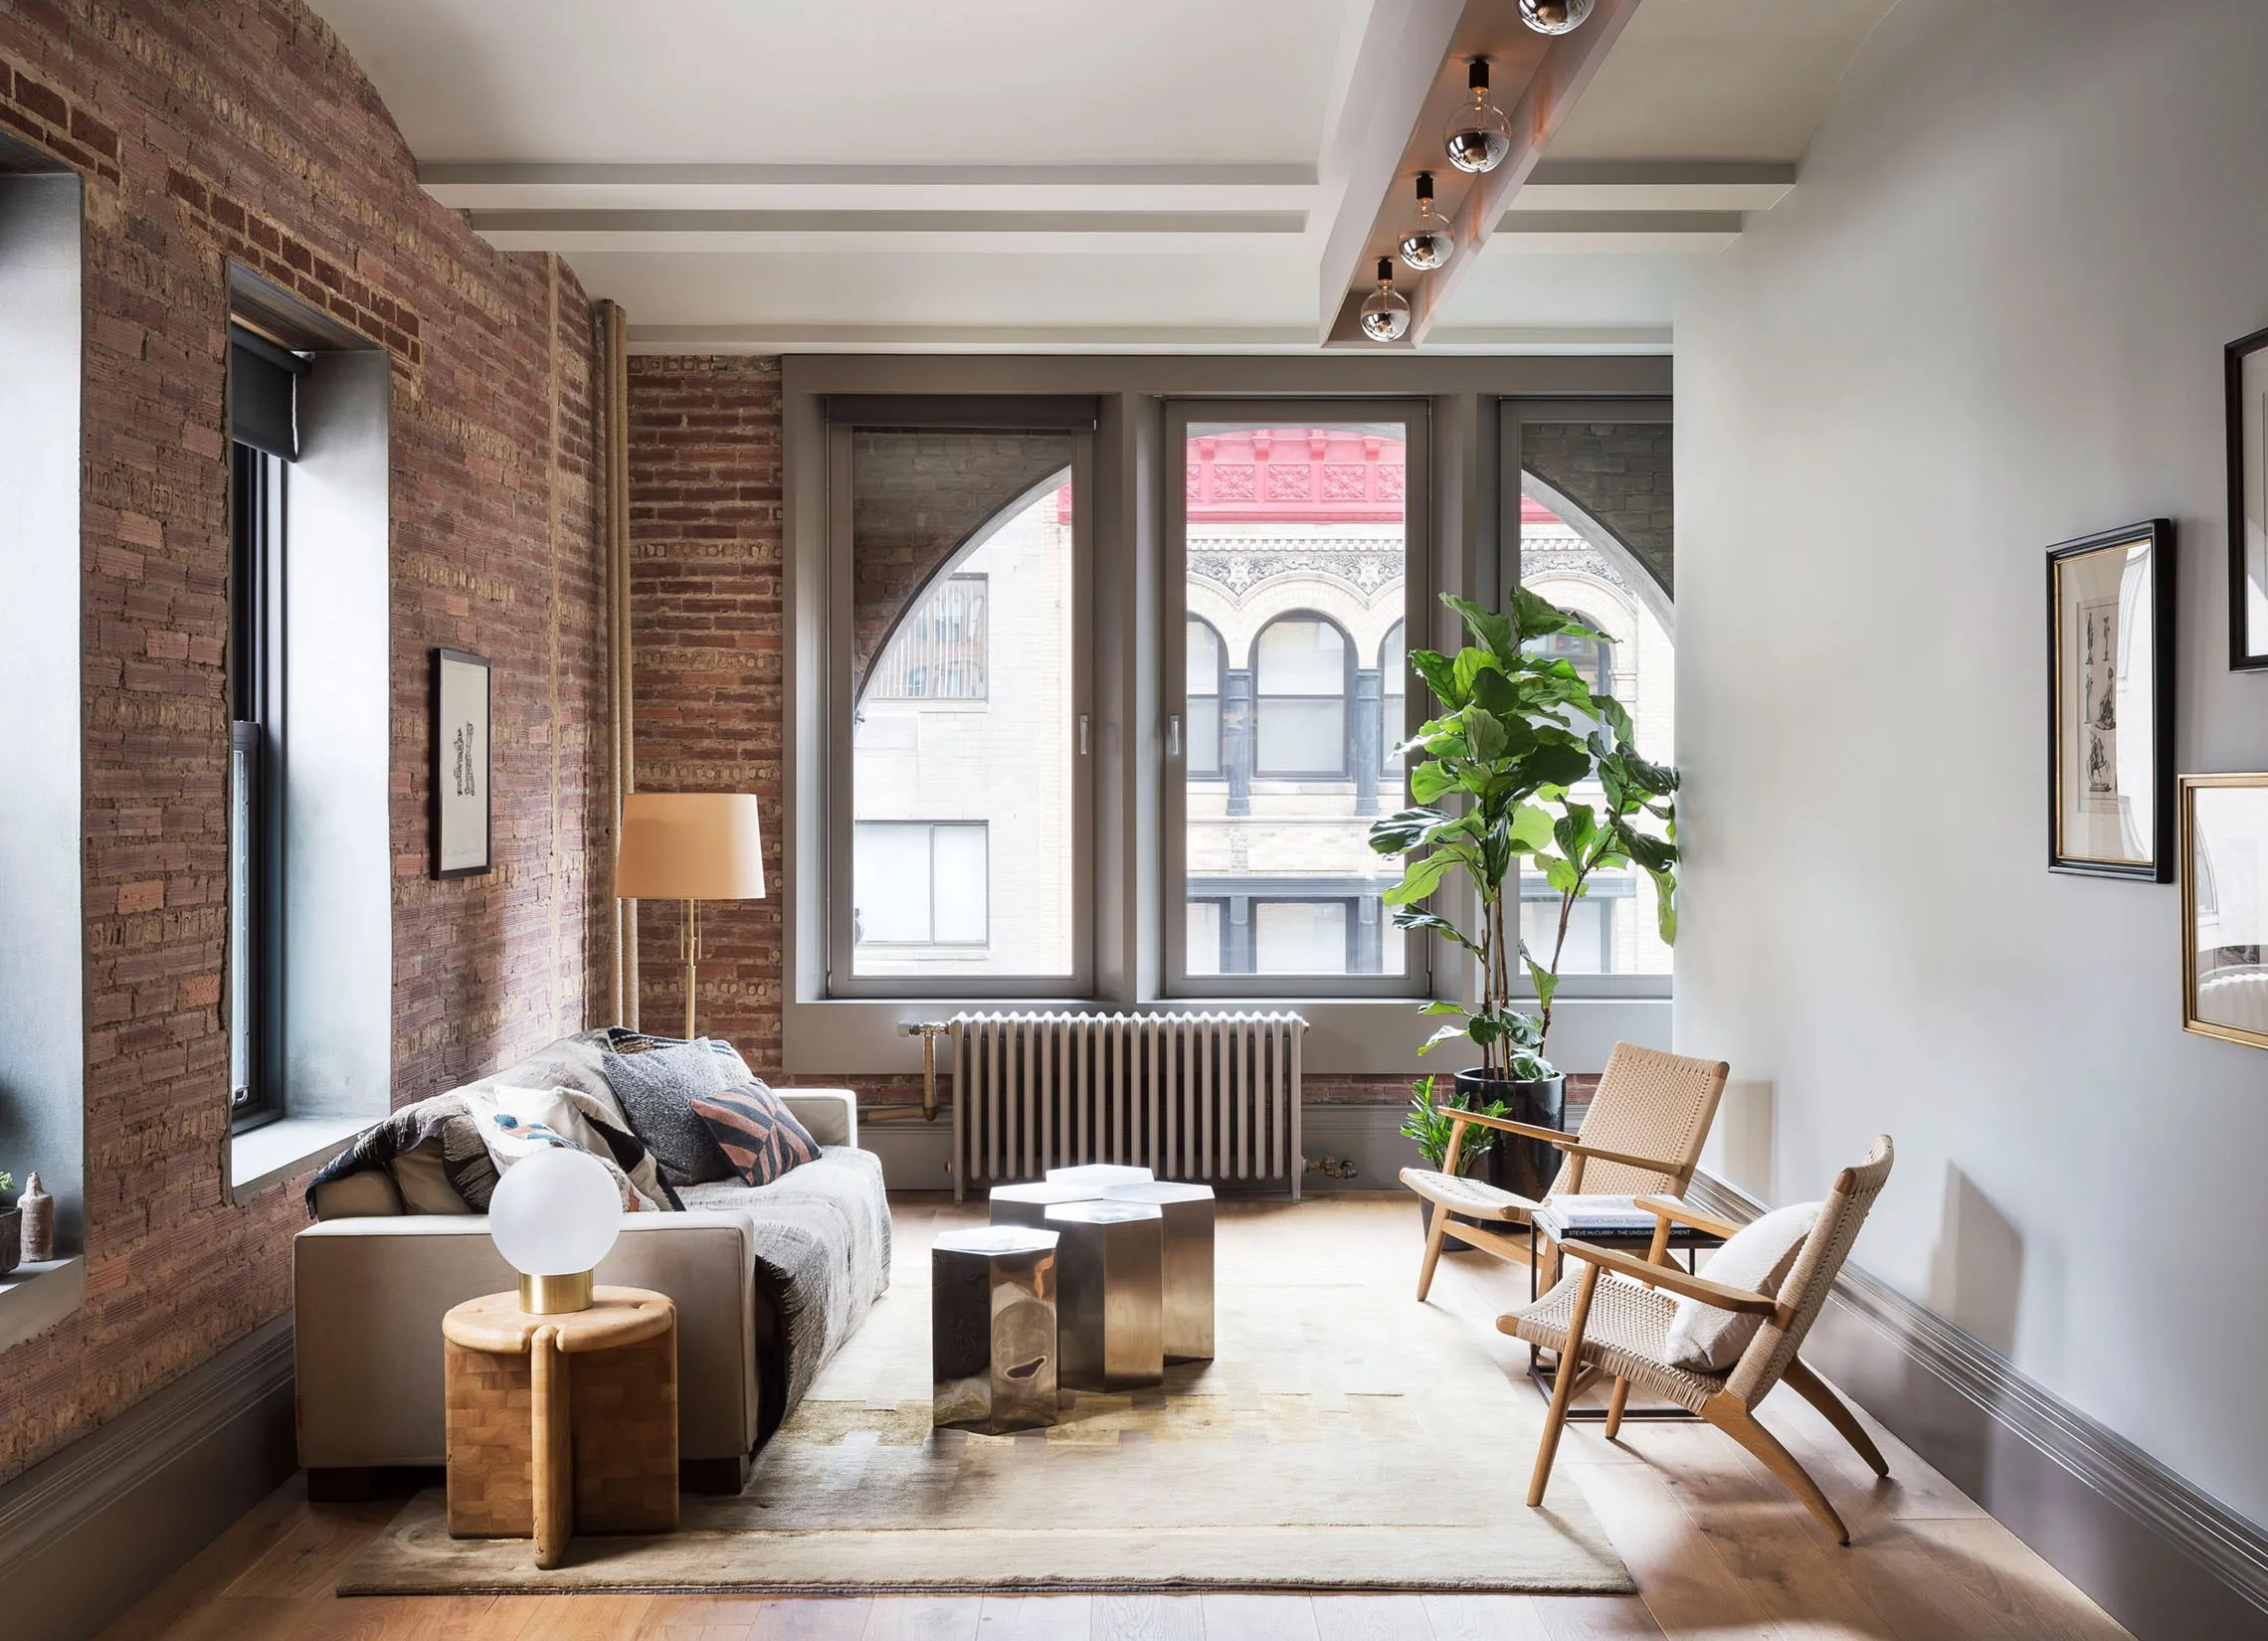 This Petite New York City Loft Packs a Stylish Punch  Architectural Digest